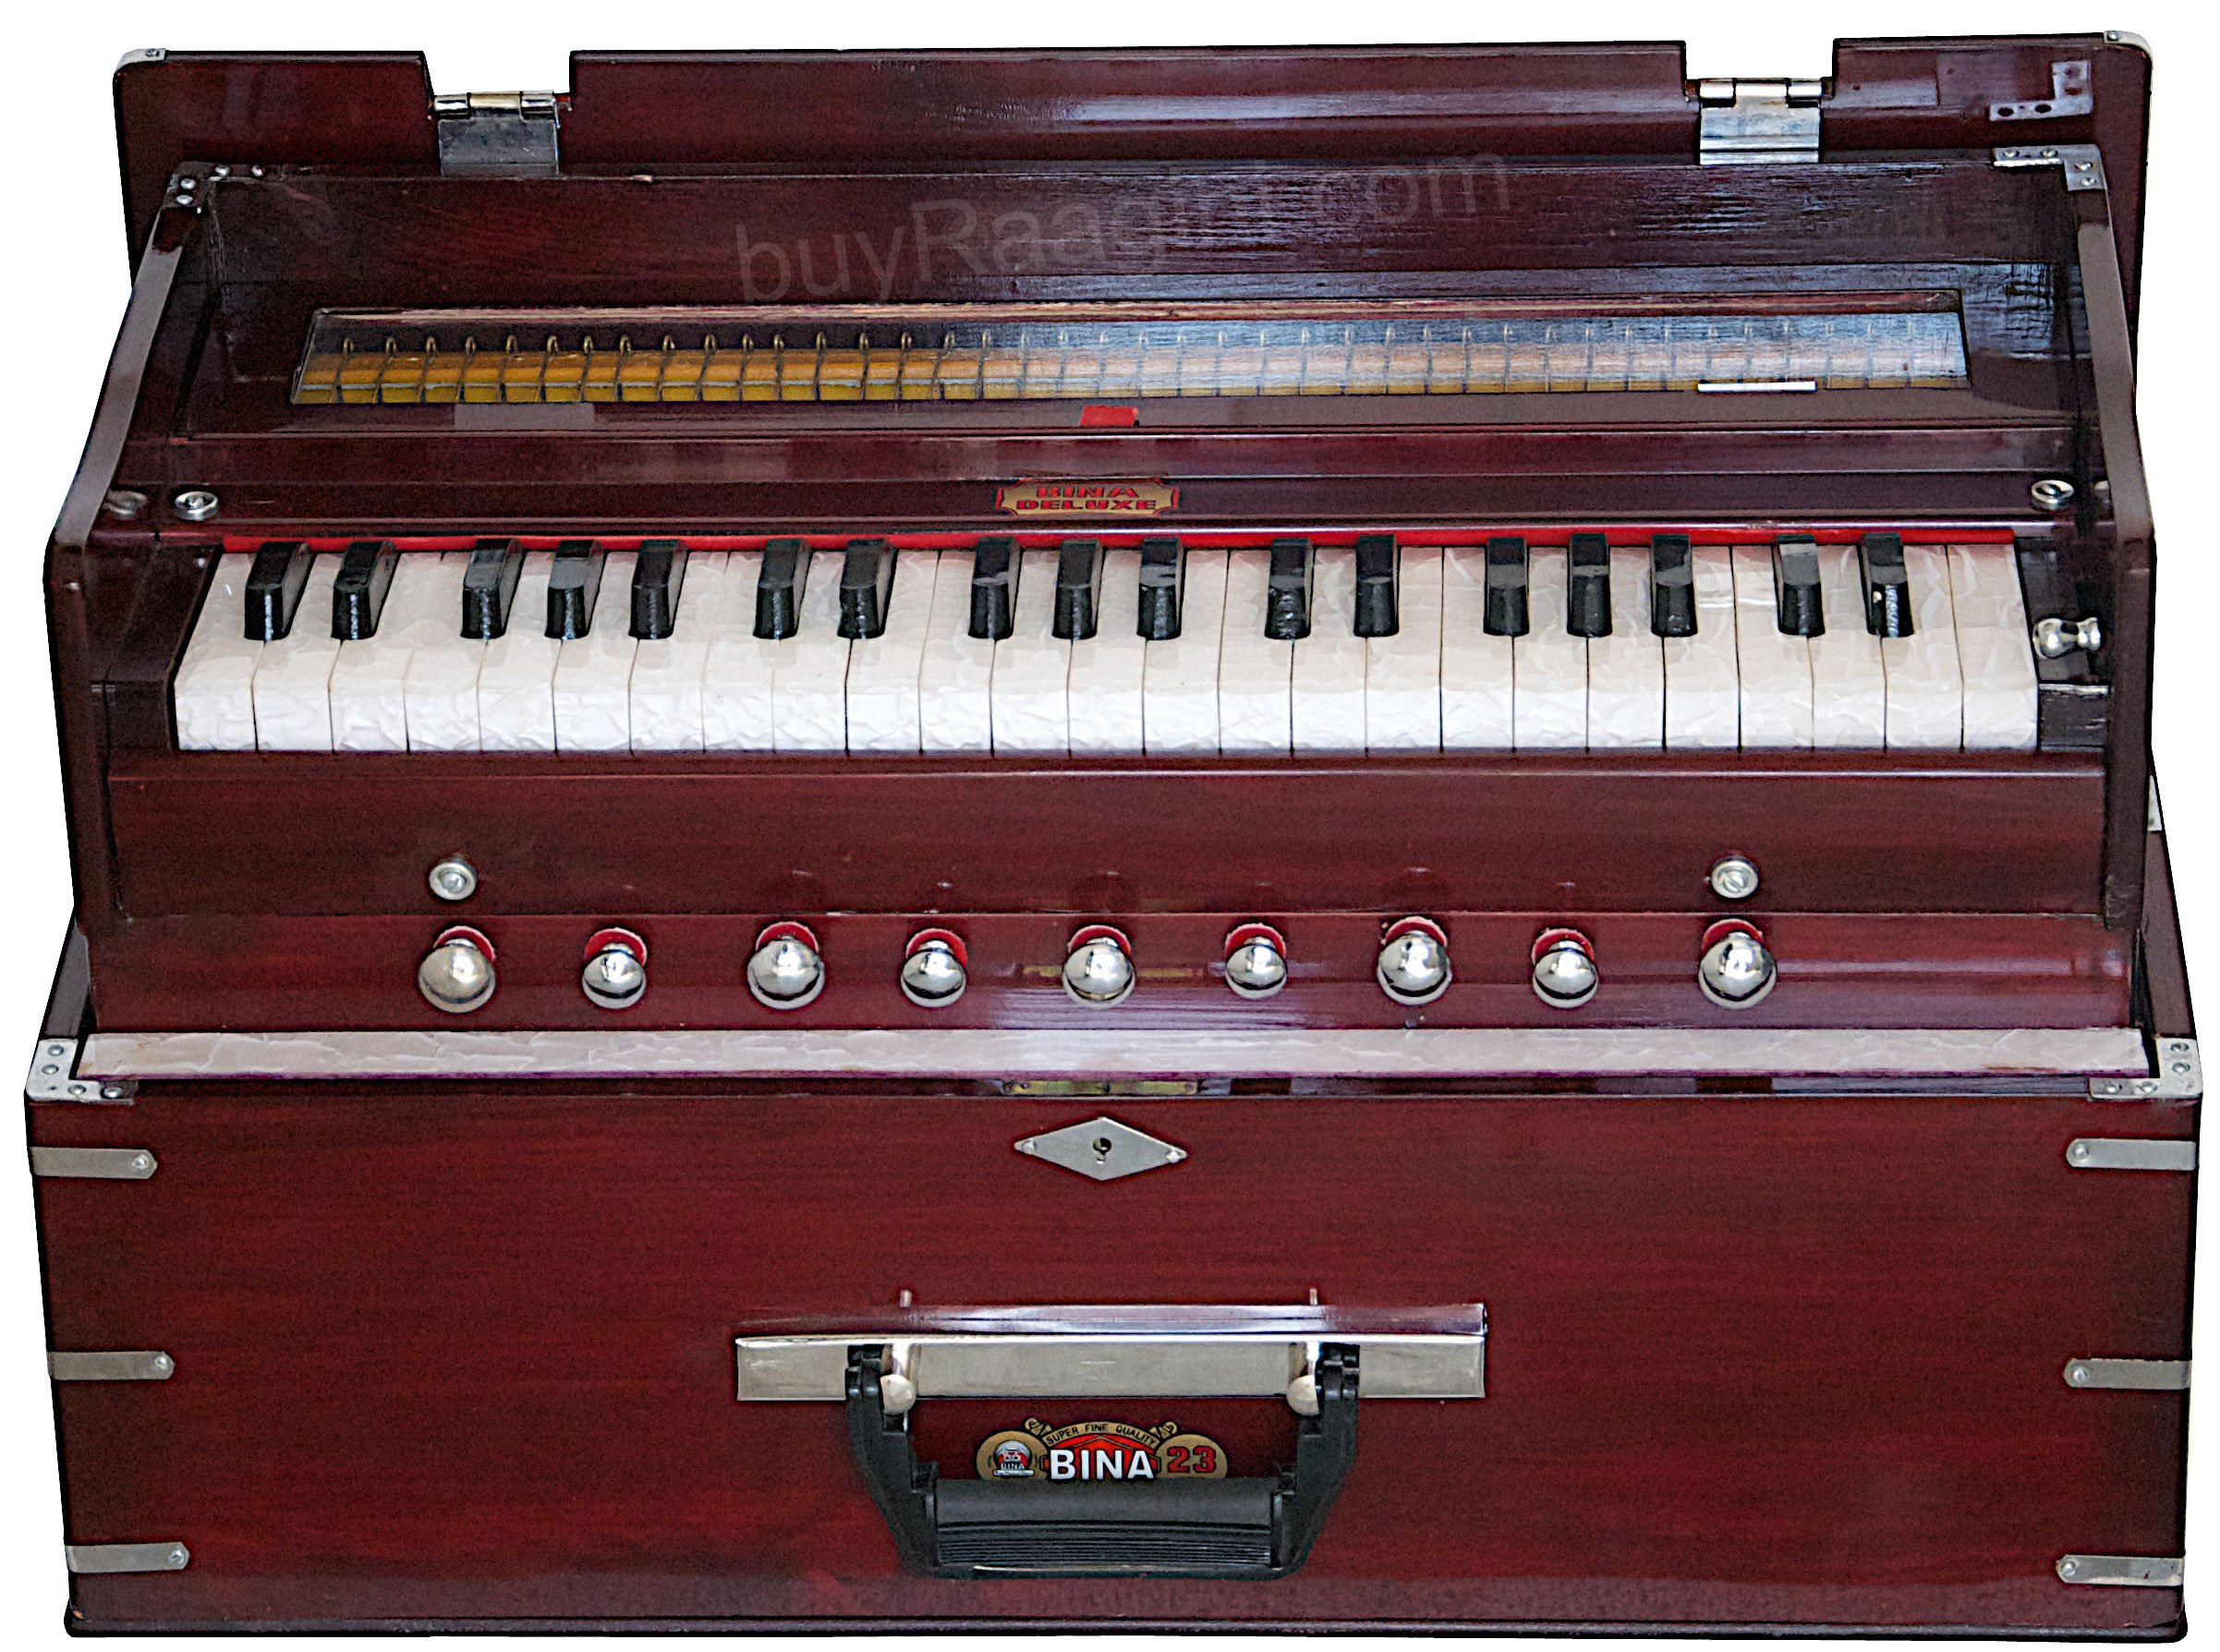 Harmonium BINA 23B, USA, Professional, Folding, Safri, 3 1/2 Octaves, 9 Stops, Rosewood Color, Coupler, Double Reed, Nylon Bag, Book, Indian Musical Instrument, Kirtan (PDI-AGH)